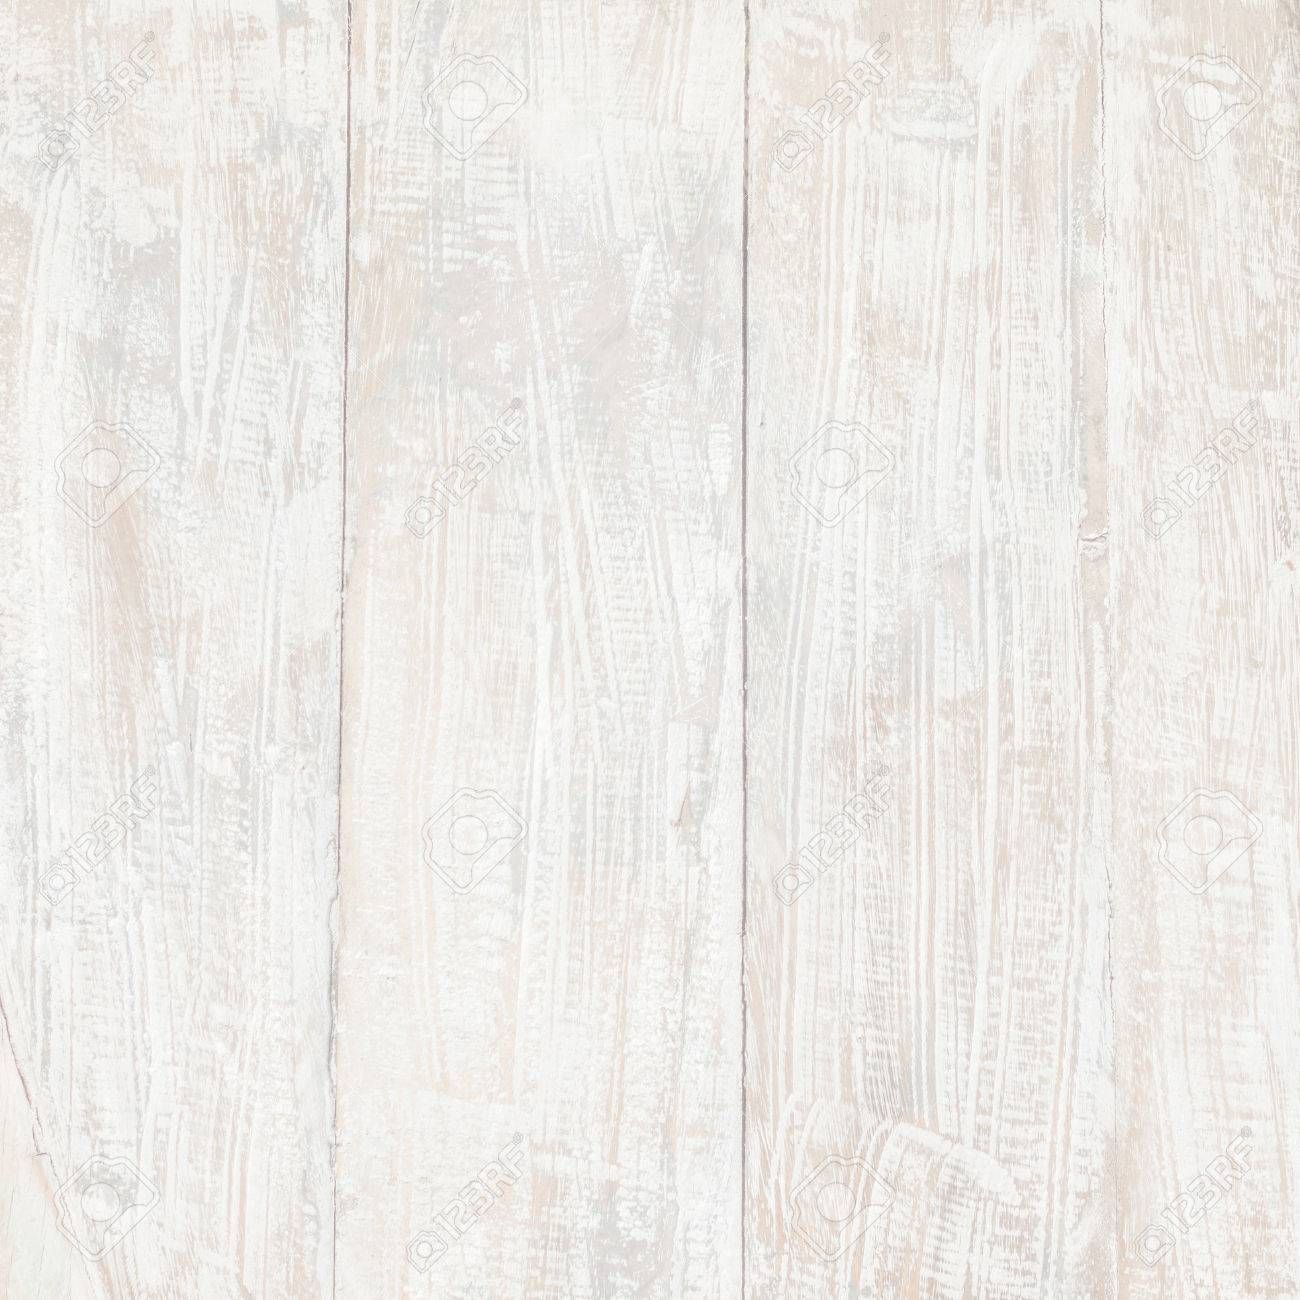 White Wood Table Texture Background Wooden Top View Stock Photo Home 1300x1300 Karaelvars Com